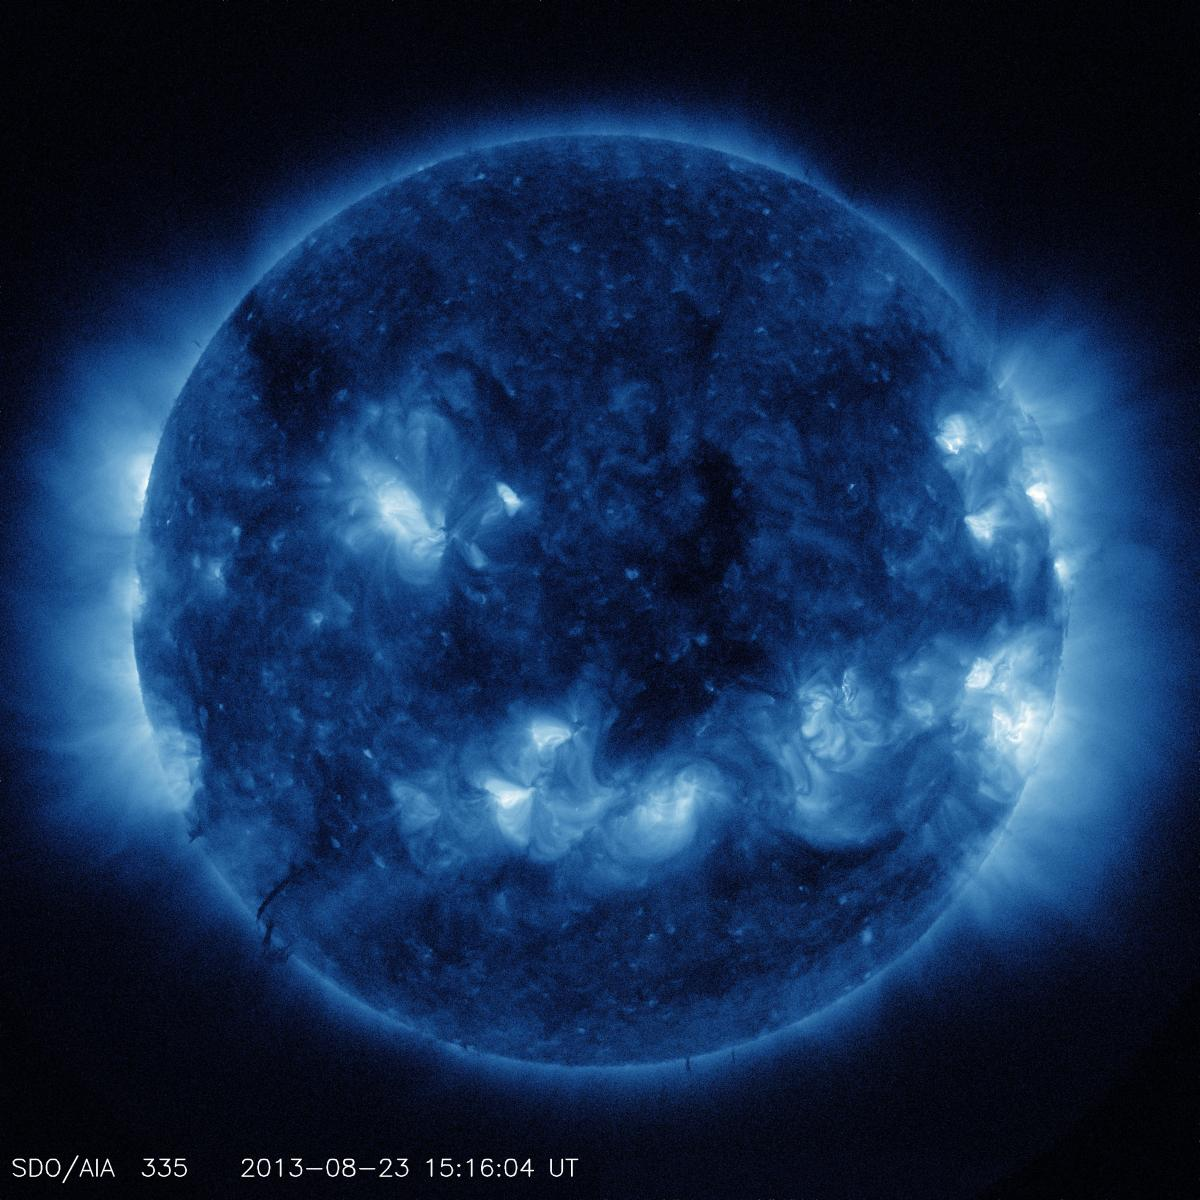 This channel highlights the active region of the outer atmosphere of the sun. Active regions, solar flares, and coronal mass ejections will appear bright here. The dark areas, or coronal holes, are places where very little radiation is emitted; they are a